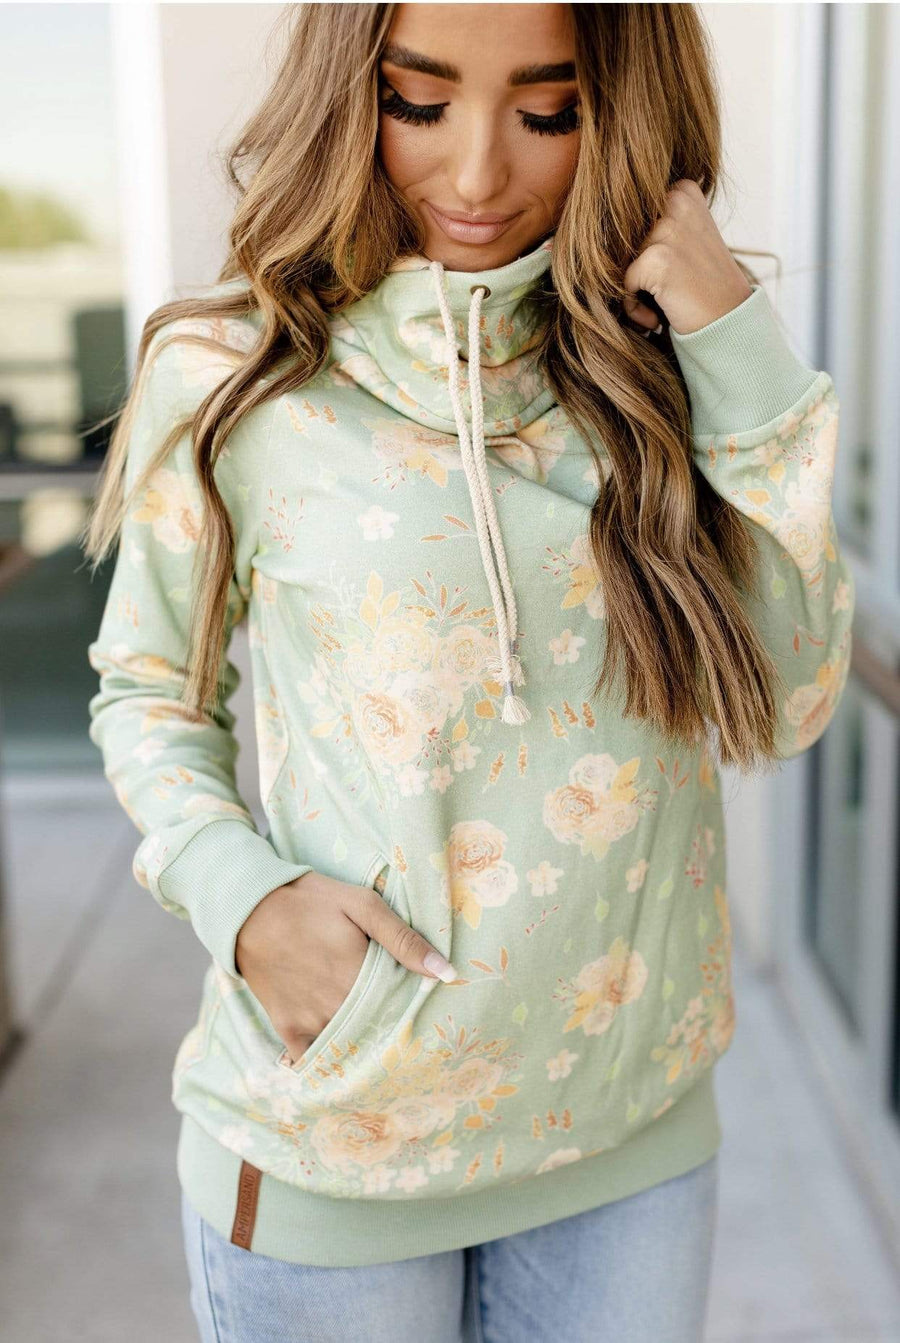 Singlehood Sweatshirt - Fascinating Floral - Hello, Sunshine Market